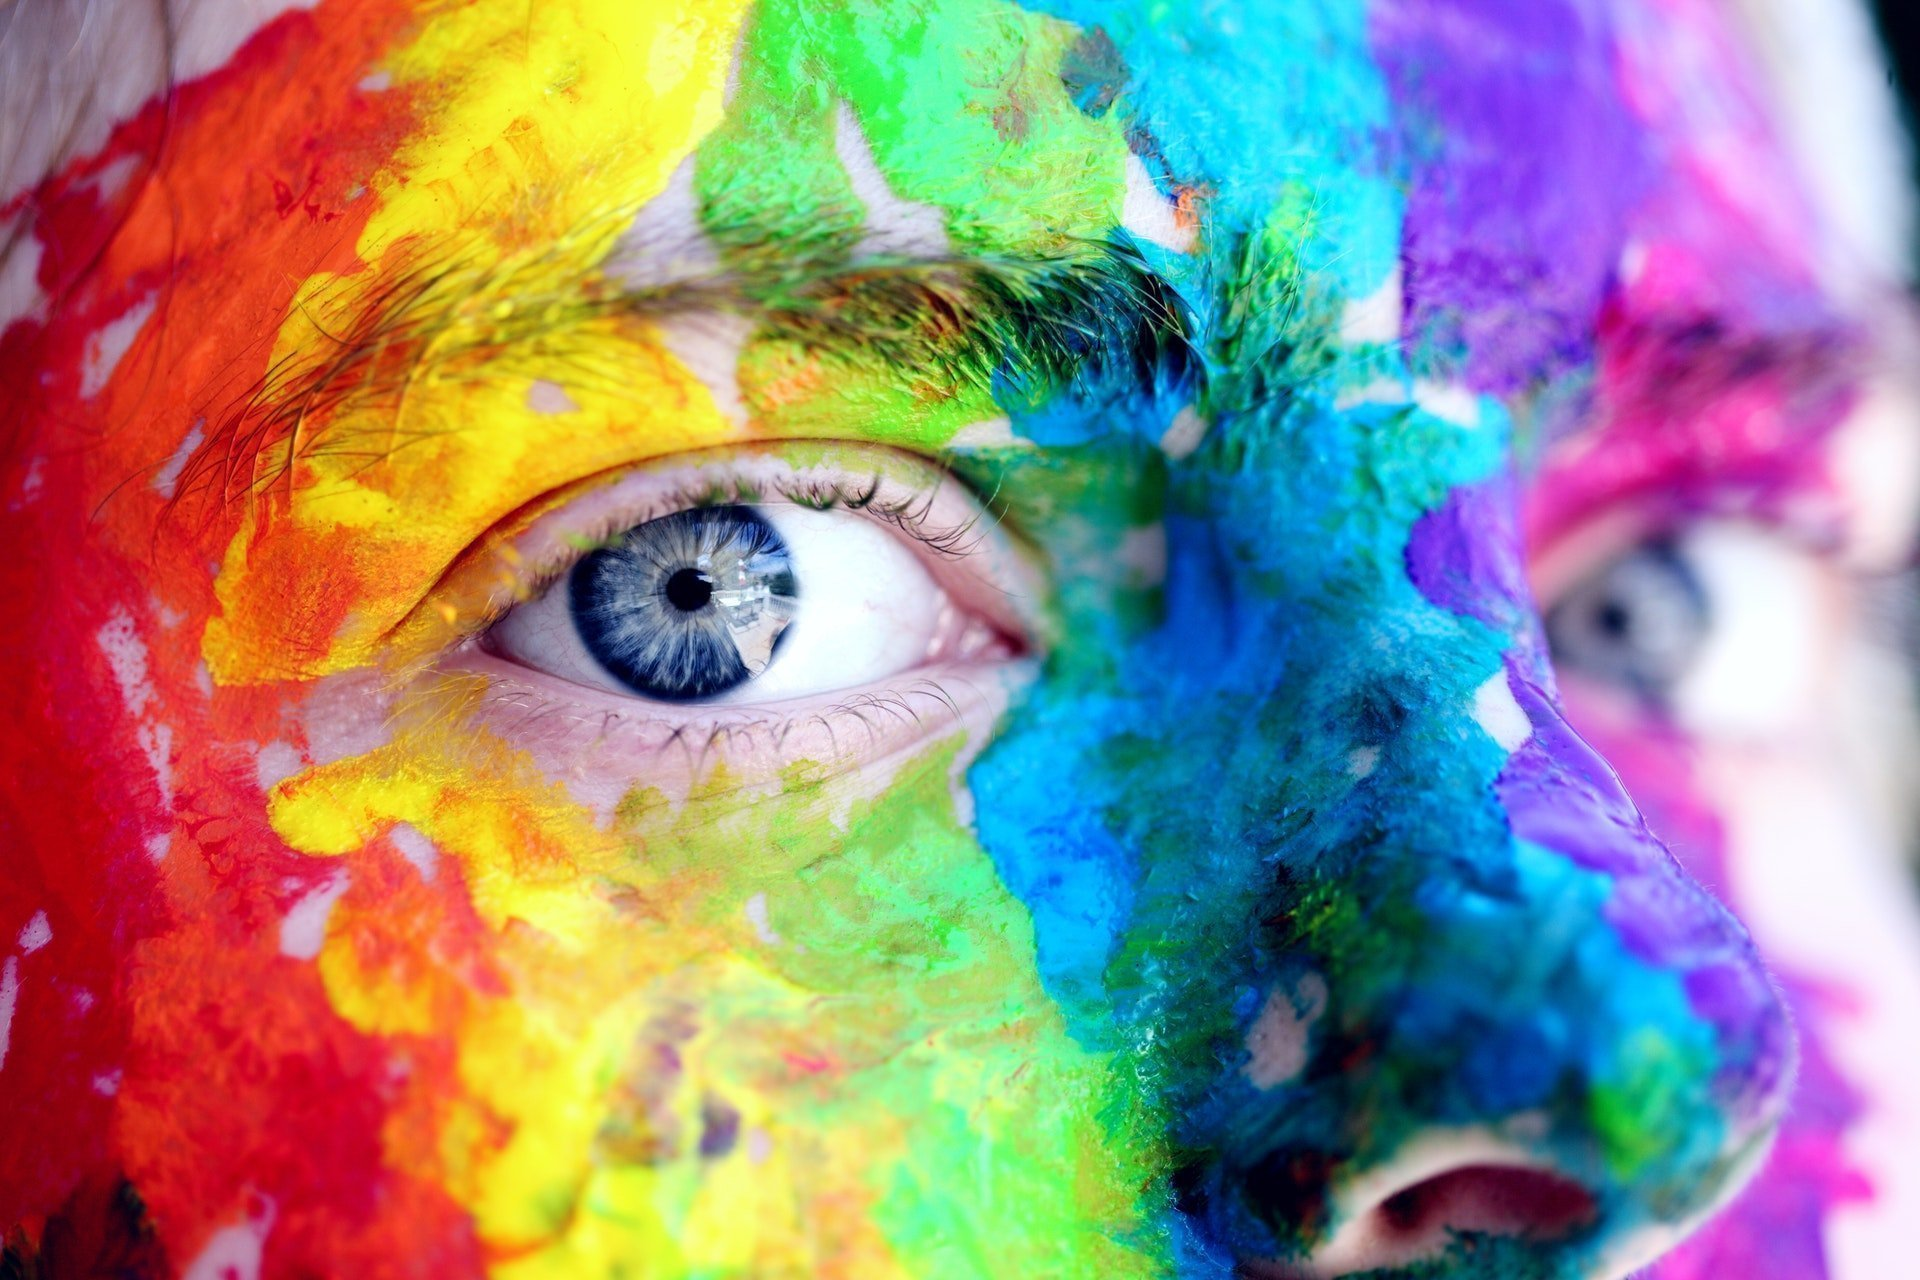 colorful paint applied to a person's face. The close up shows the influence of color psychology in their eyes